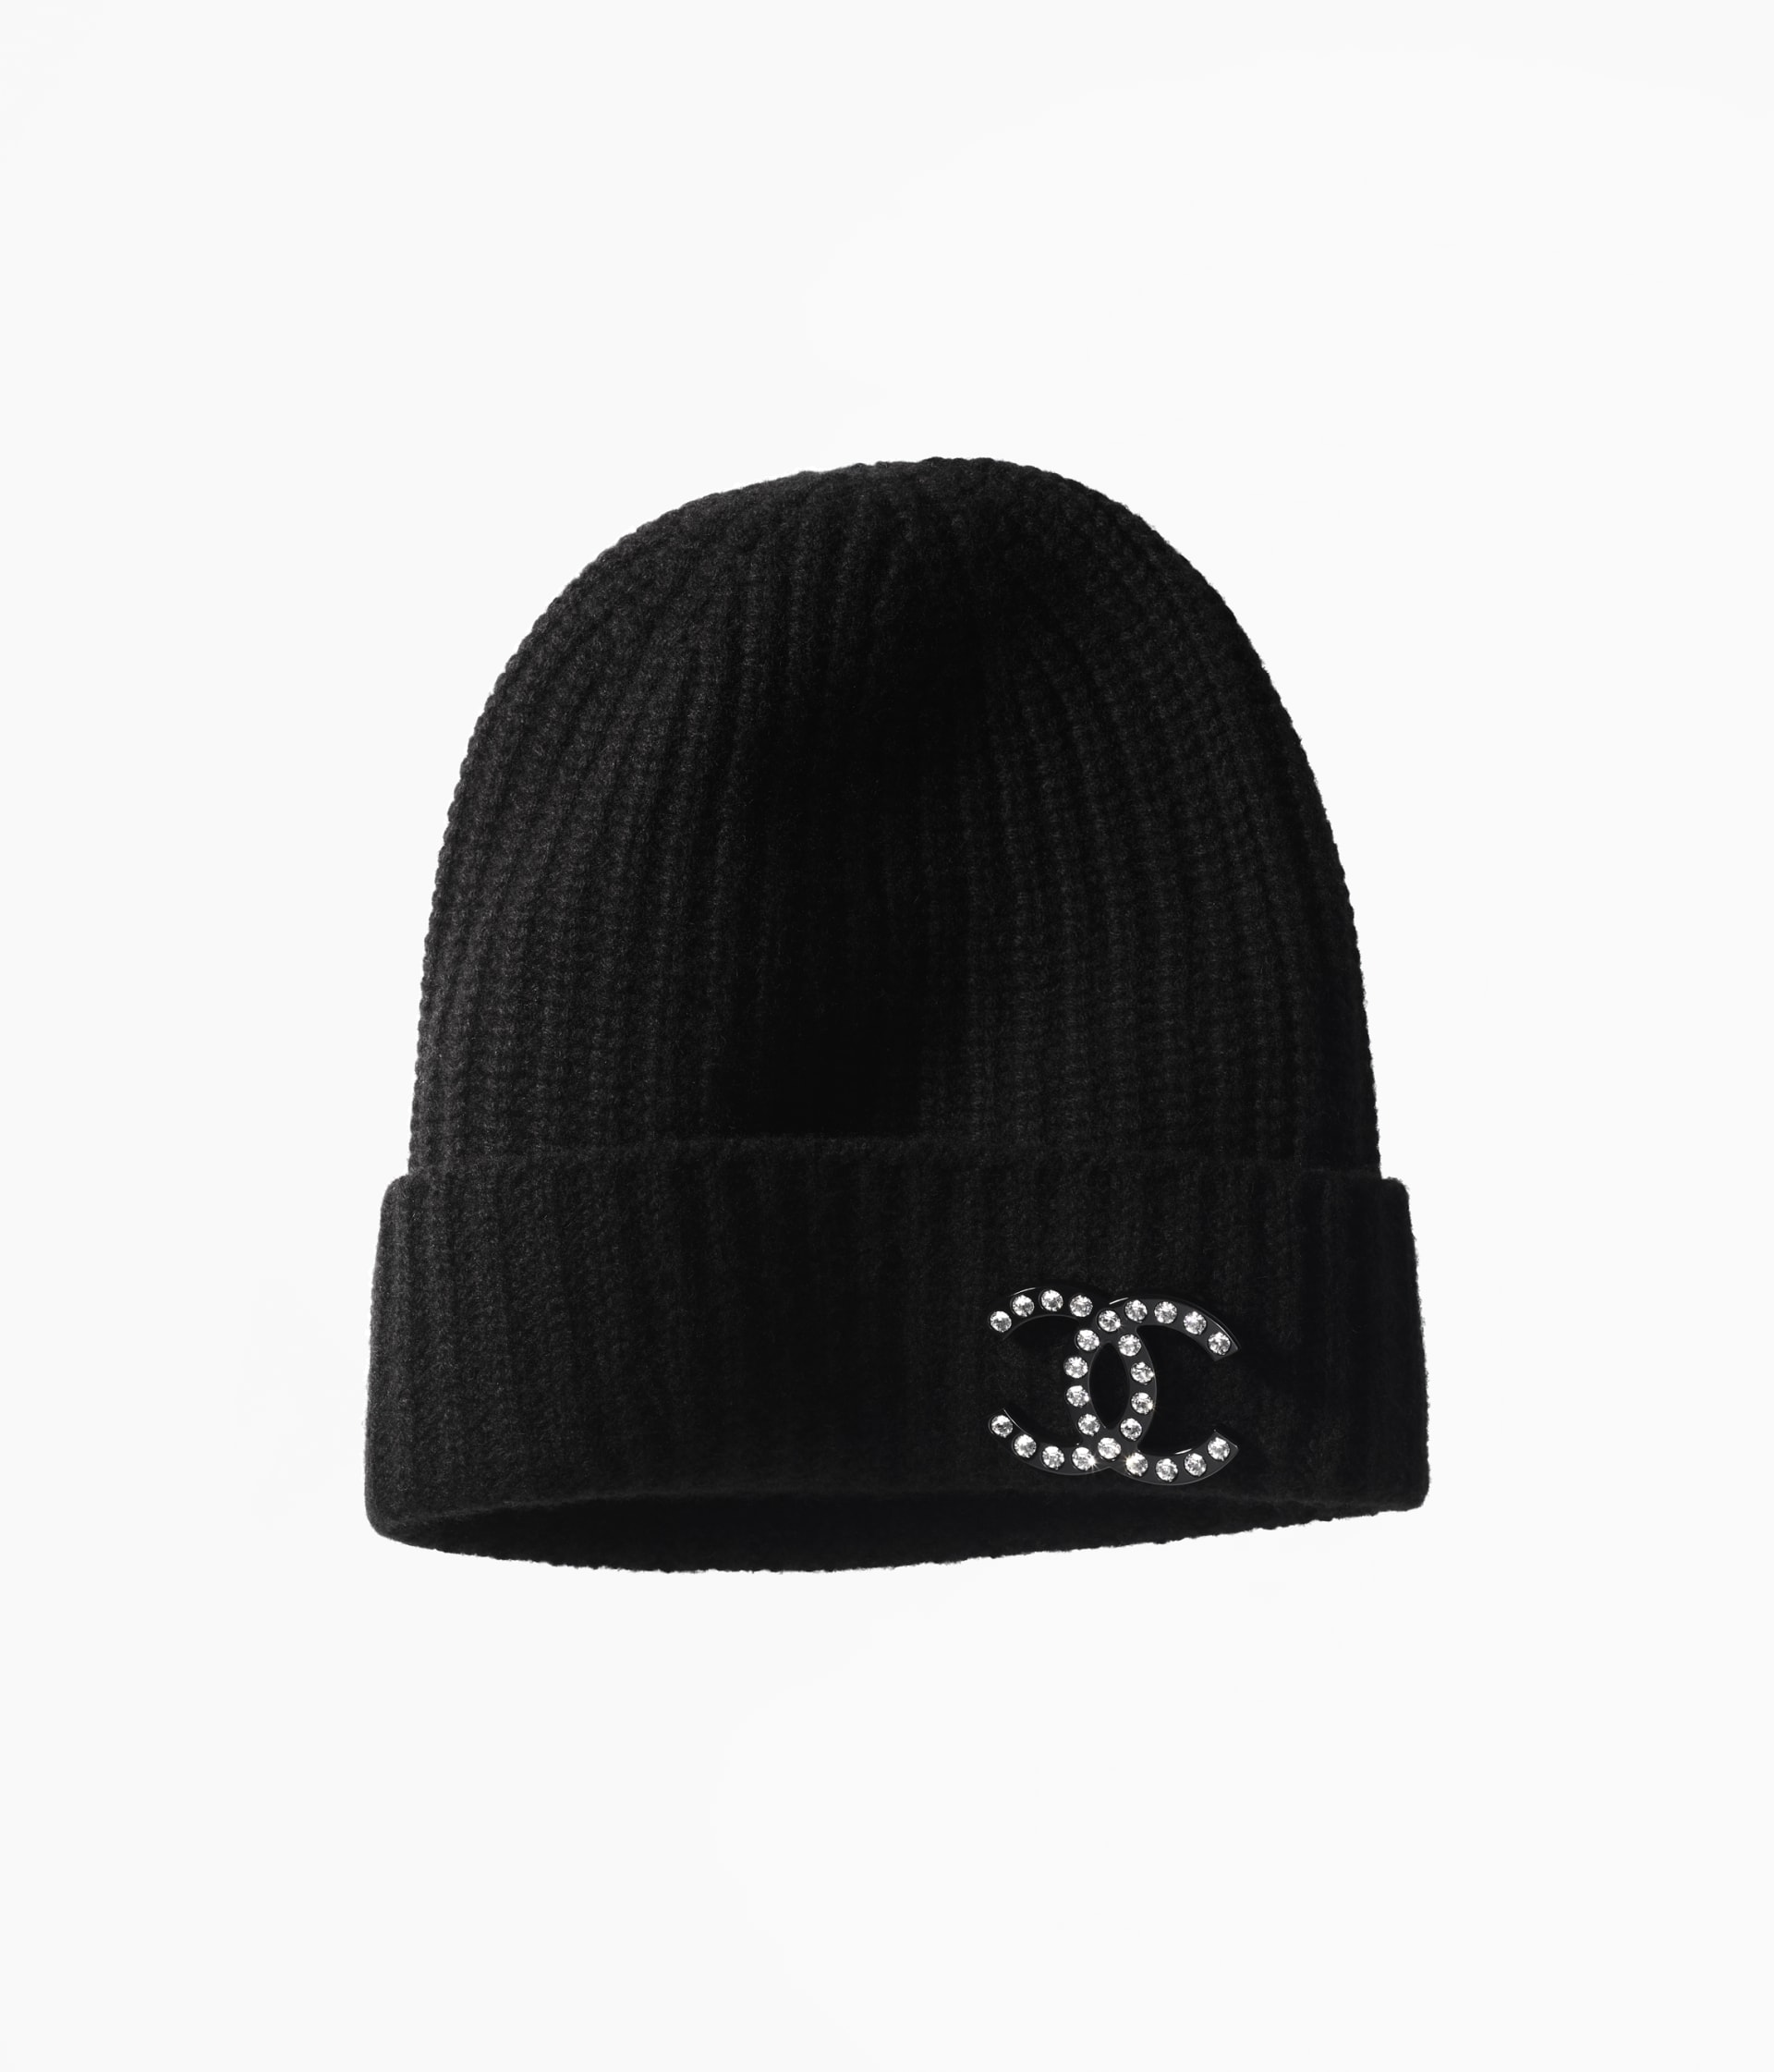 image 1 - Beanie - Cashmere, Resin & Strass - Black & Crystal